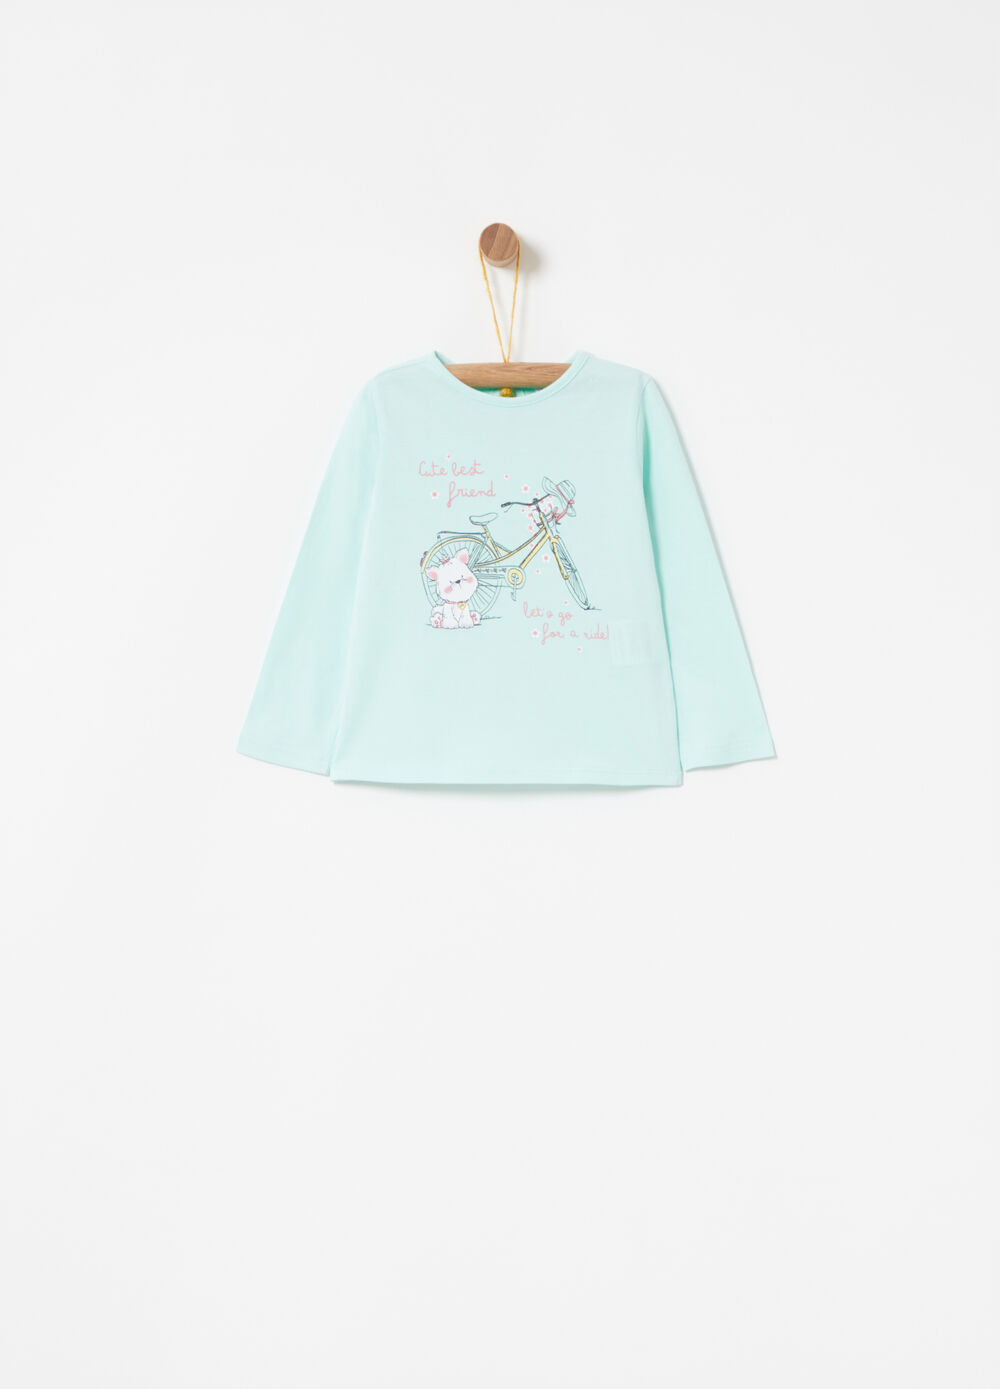 Cotton jersey T-shirt with dogs and bikes print